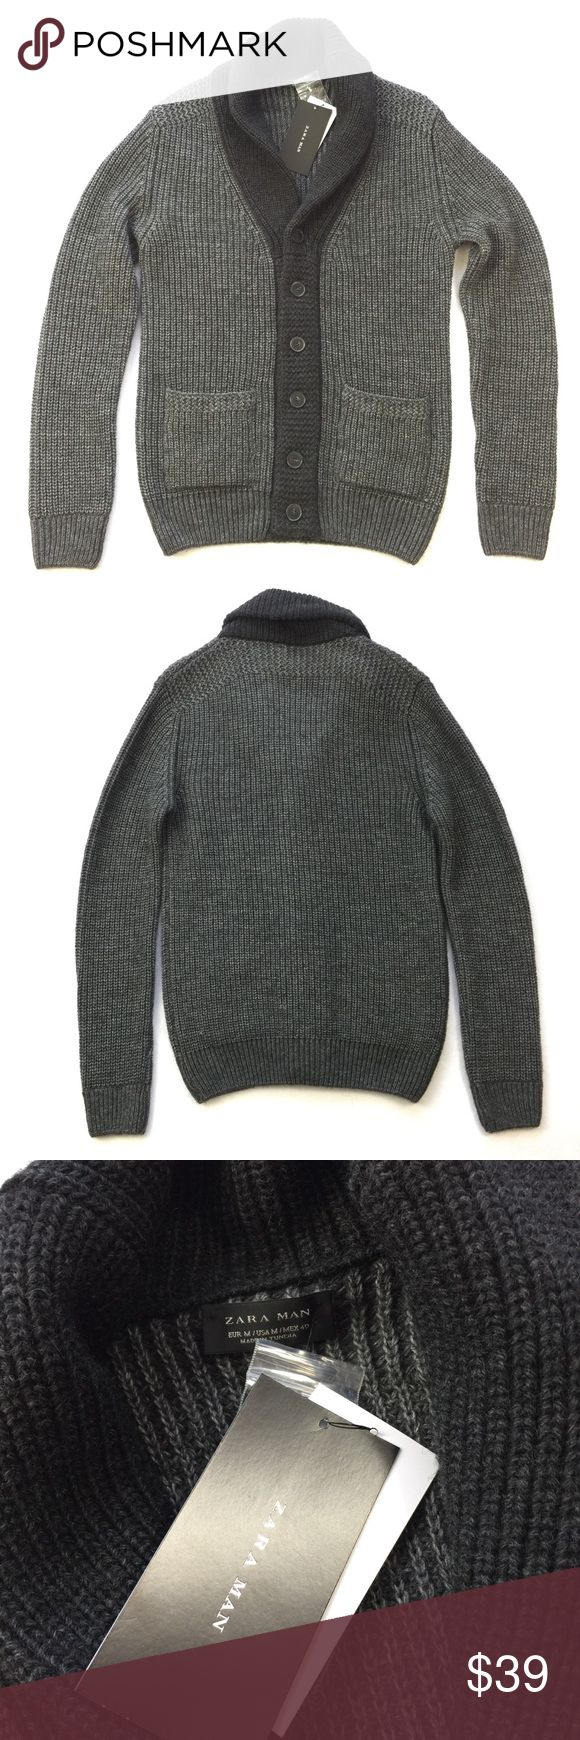 """NEW •• Zara Man • Cable Knit Cardigan Sweater Stylish and warm imported sweater by Zara Man. It's a great grab and go sweater that's just thick enough to be worn year round. Perfect for date night, casual get togethers, or even under a light jacket when layering up.  Measurements (Approx) Pit to Pit: 19.5"""" Length: 27.5"""" Arm: 28""""  Comes from a pet free smoke free home. (MD2-DWN) Zara Sweaters Cardigan"""